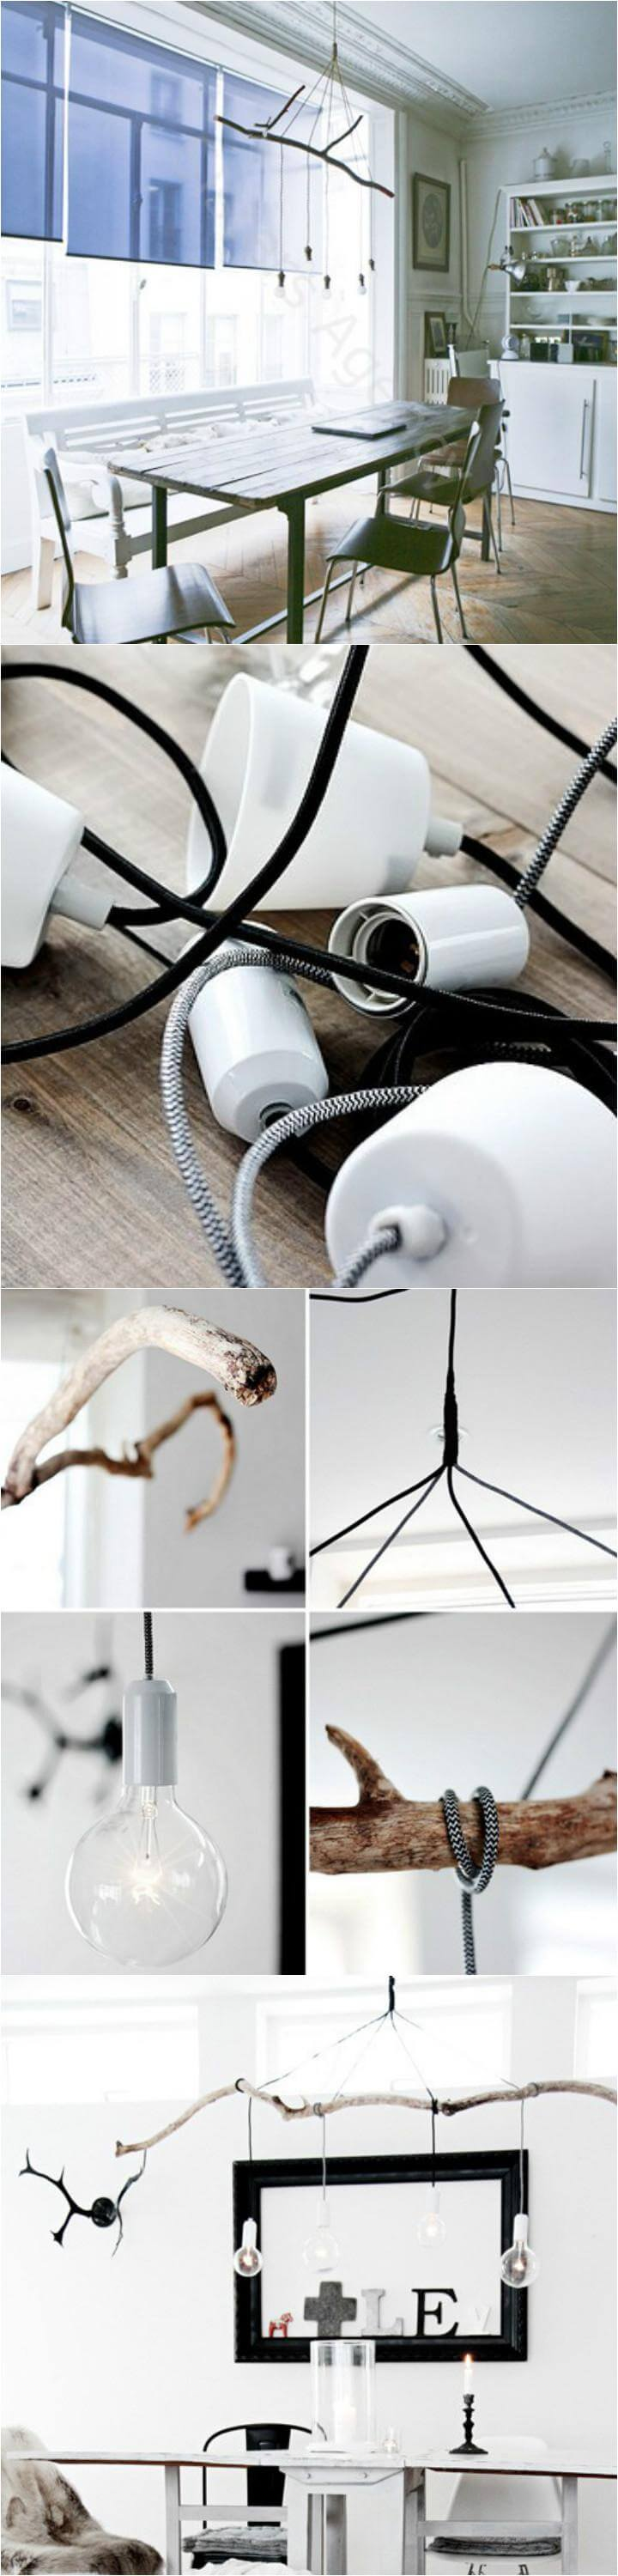 100 DIY Pendant Light Projects To Make Your Home Decoration Easy